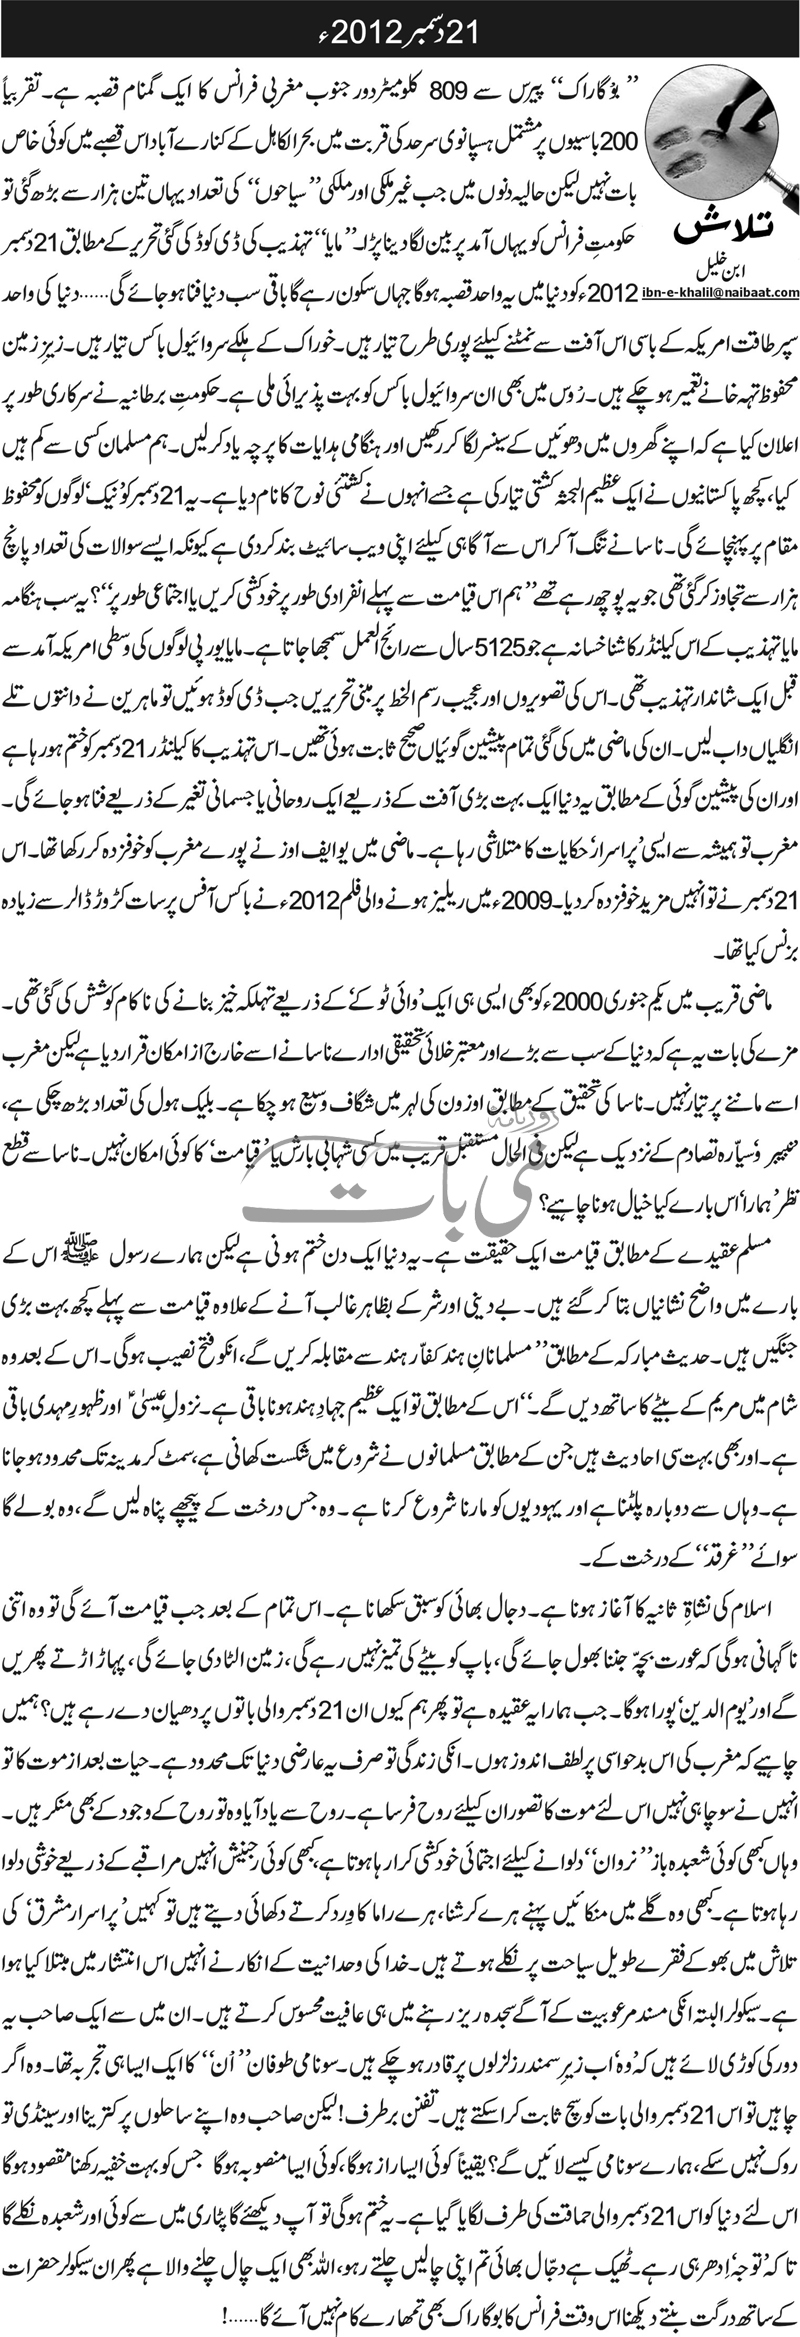 21 december 2012 urdu in islam 21 December 2012 and Islam